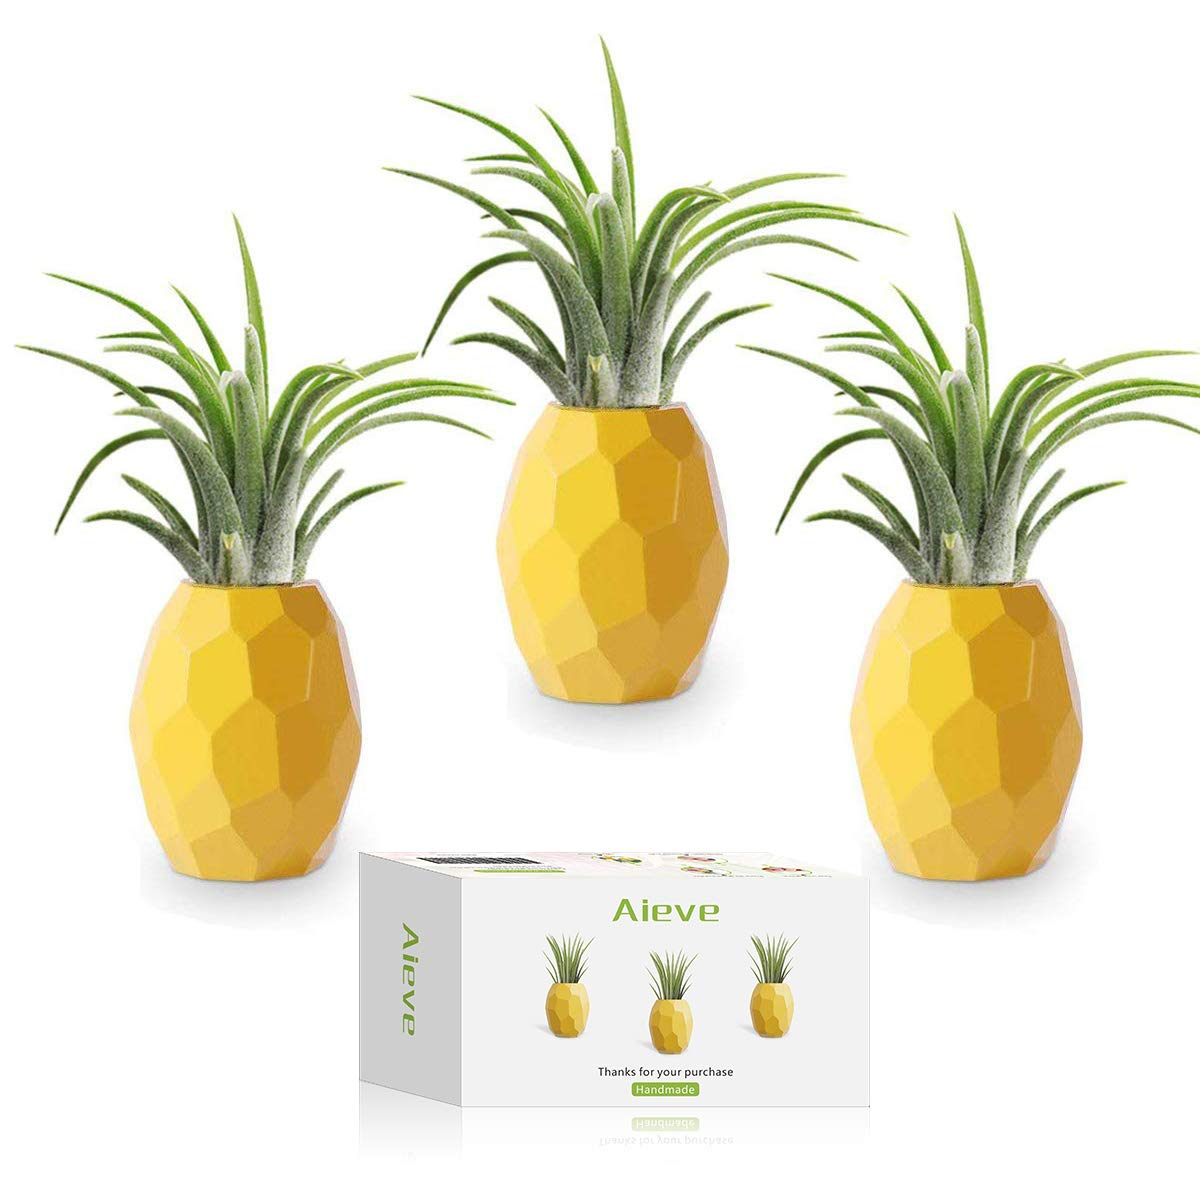 AIEVE Air Plant Holder,3 Pack Pineapple Planter Tillandsia Holder Container Pot Tabletop Stand with Magnet for Hanging Tillandsia Air Plants Display Wall Indoor Home Decor (Large)